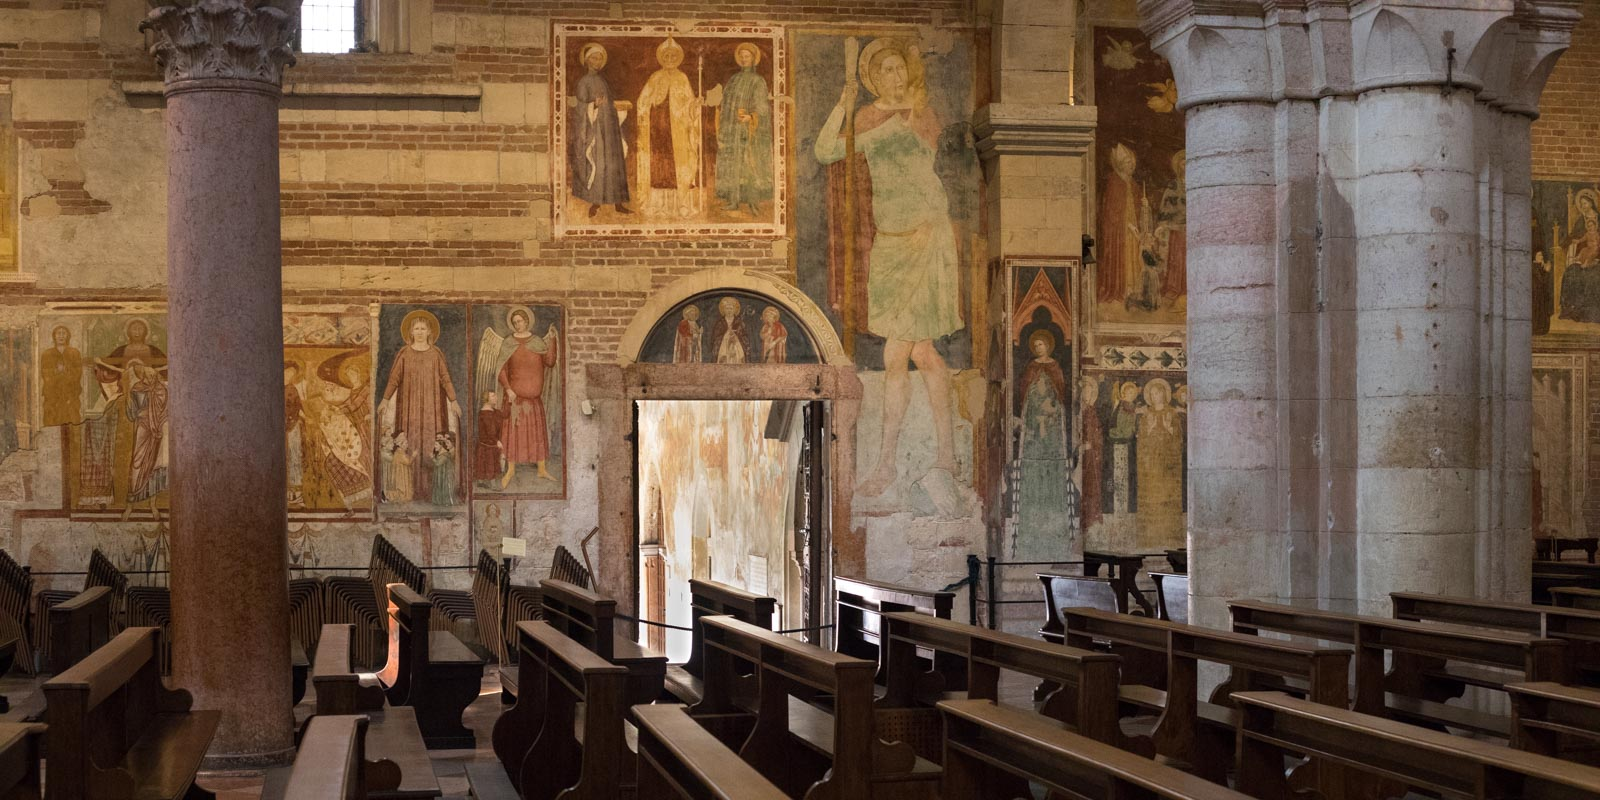 The biblical graphic novel walls of San Zeno's nave. ©Kevin Day/Opening a Bottle